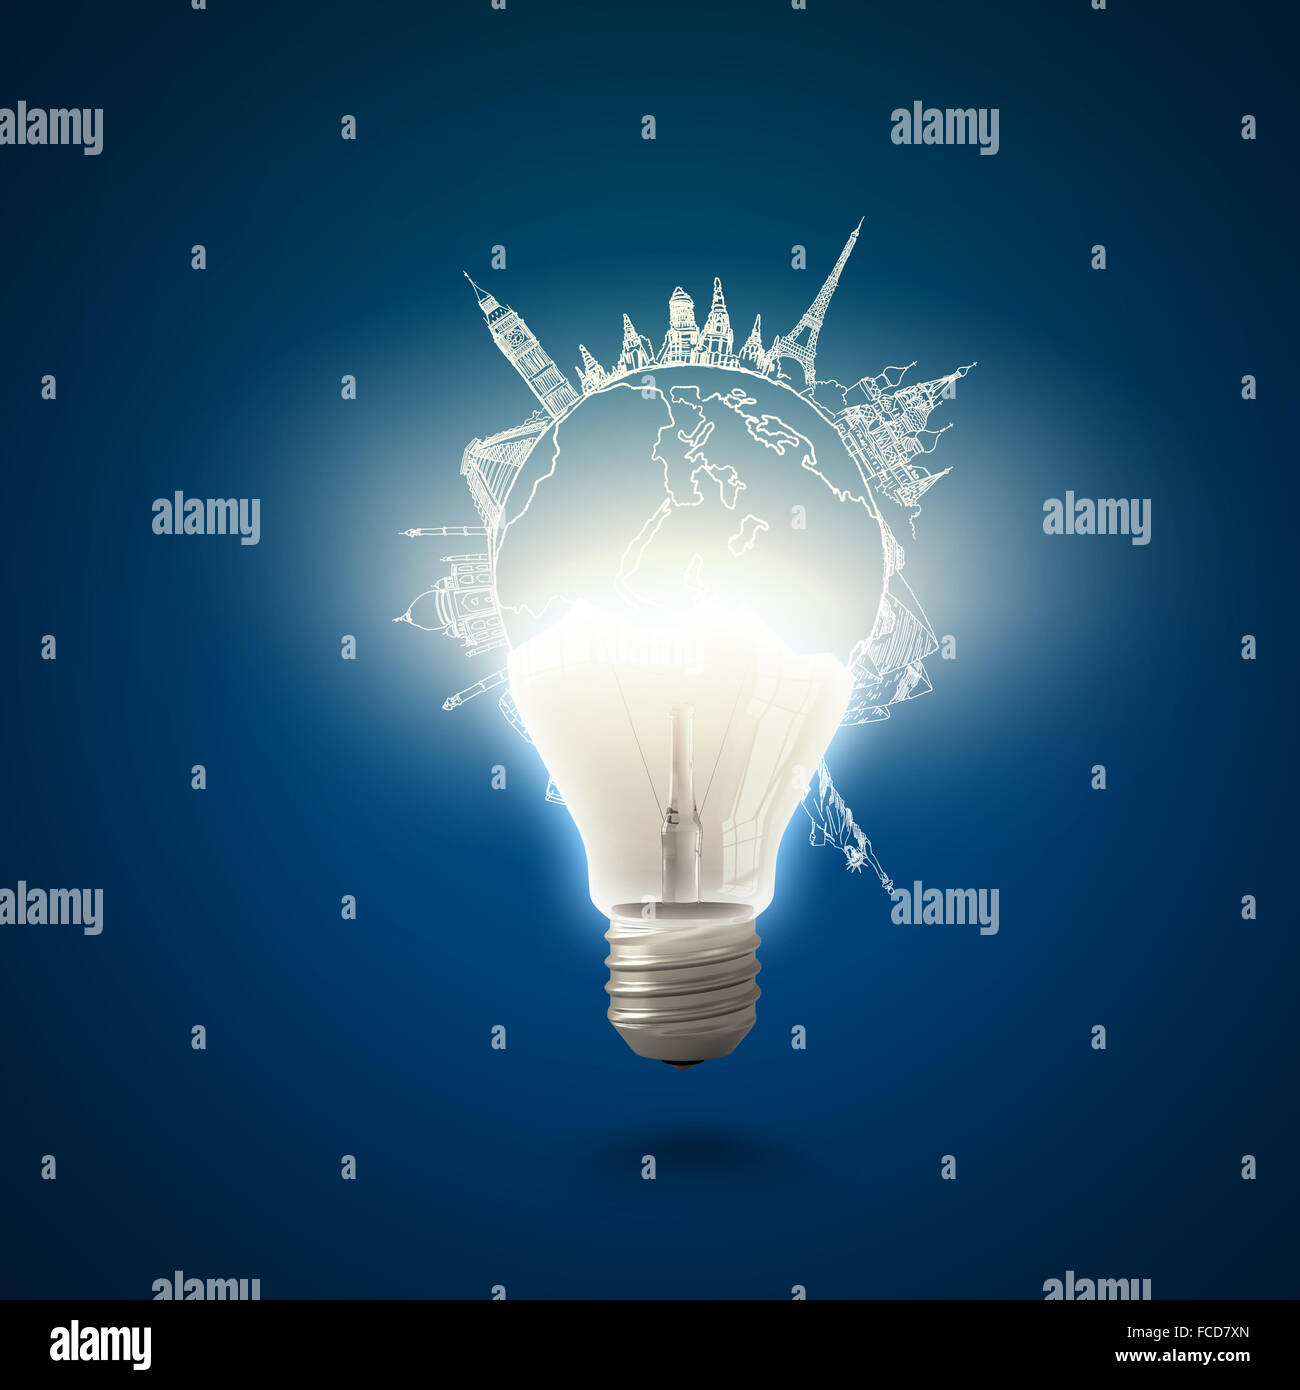 Conceptual image of electric bulb against blue background - Stock Image